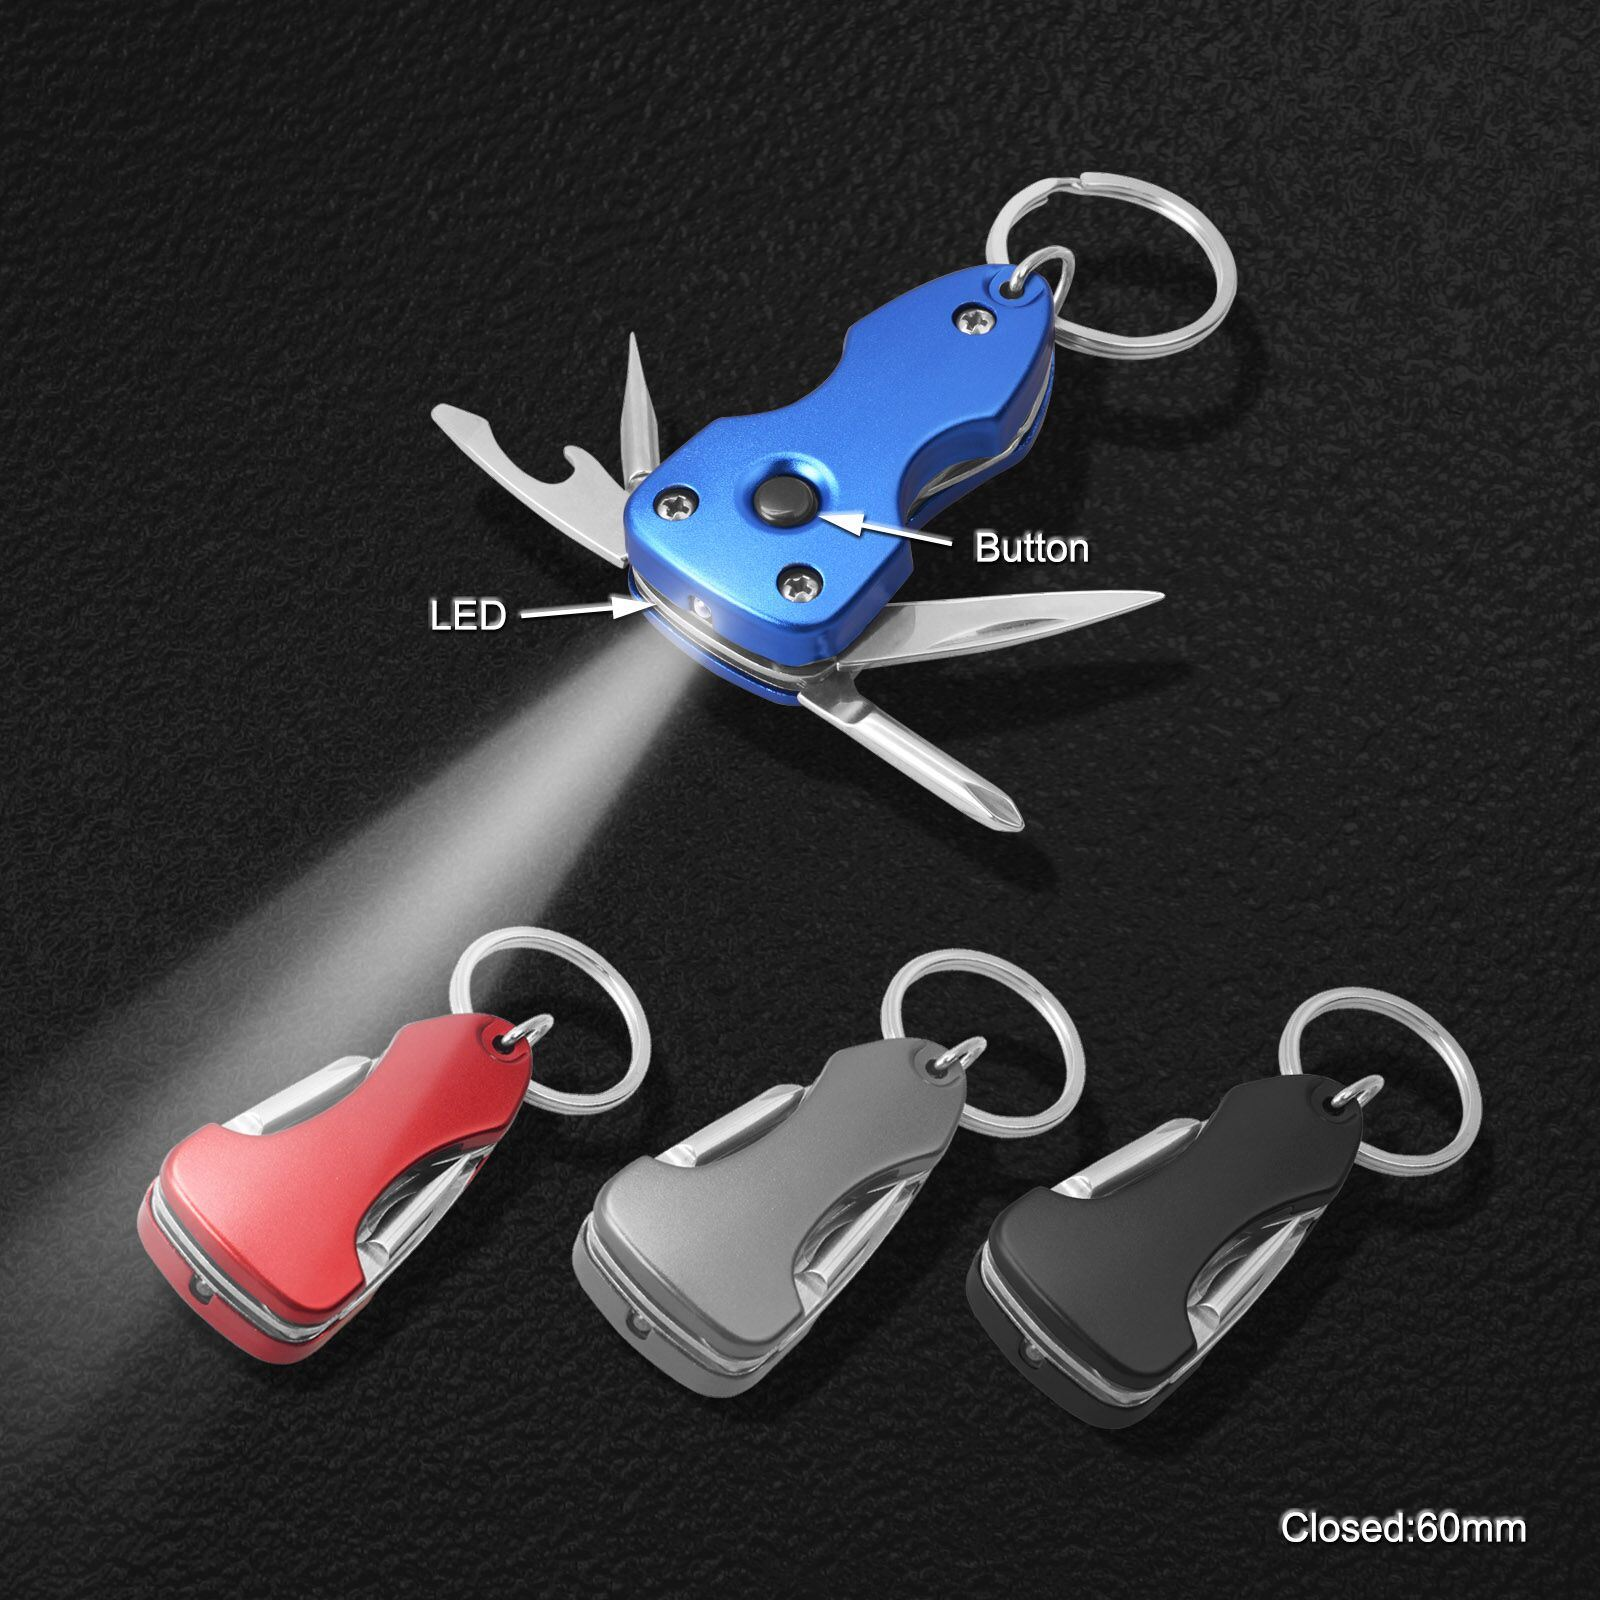 Multi Function Key Chain Tools with LED Torch (#668-LED)